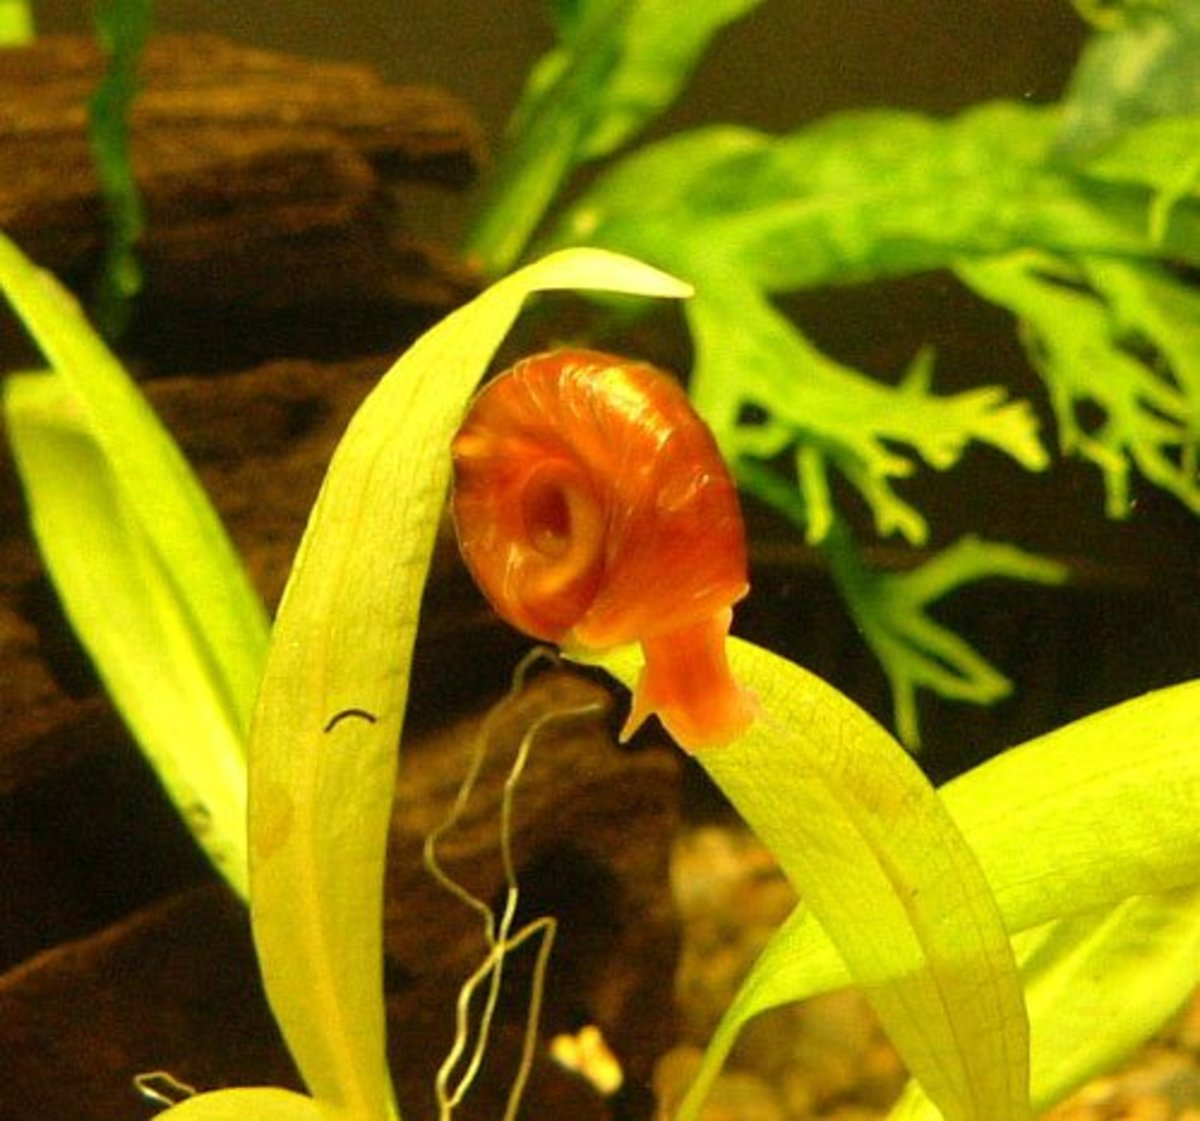 Some snails are nice to have in your fish tank, but when their population explodes it is bad news.